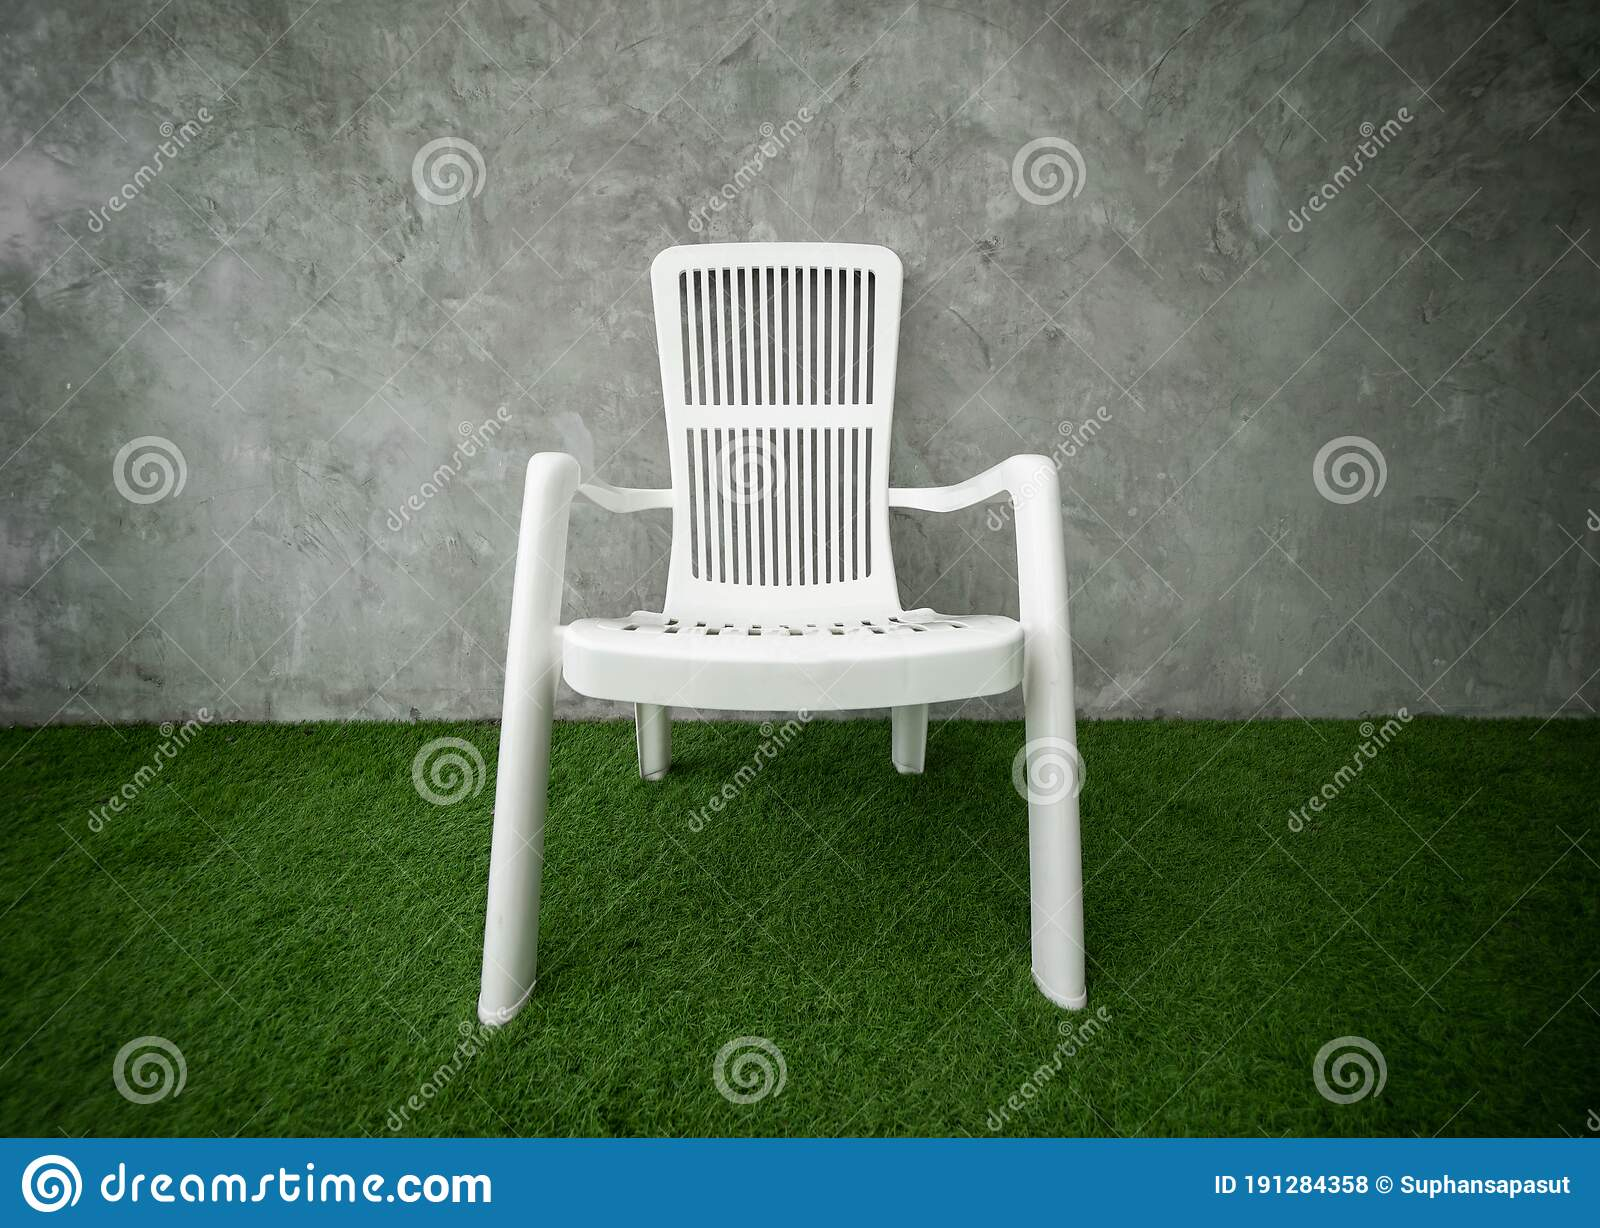 Plastic Chair On Green Glass With Copy Space Stock Photo - Image